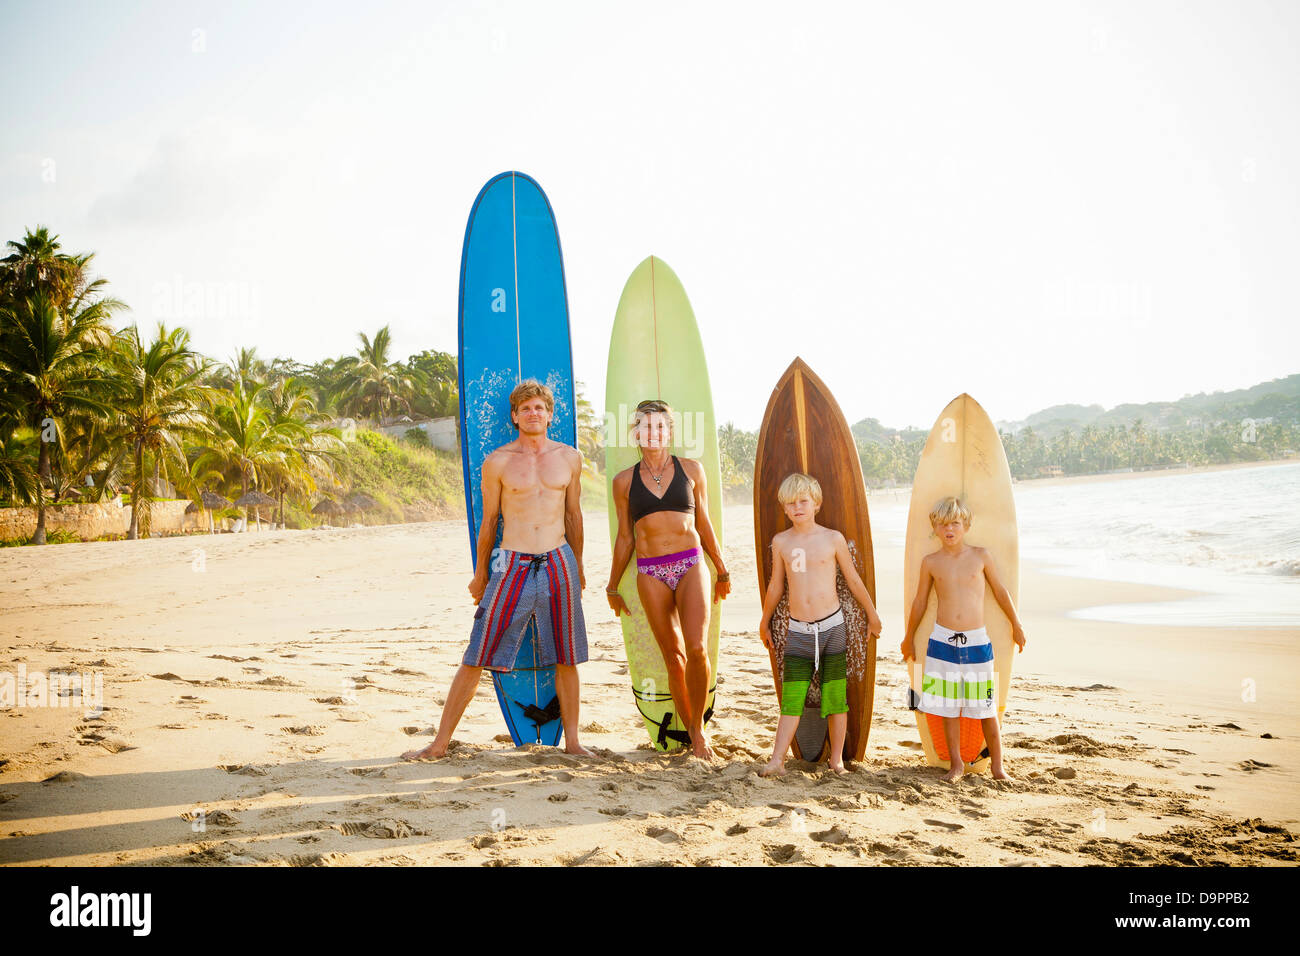 Family standing on beach with surfboards Stock Photo